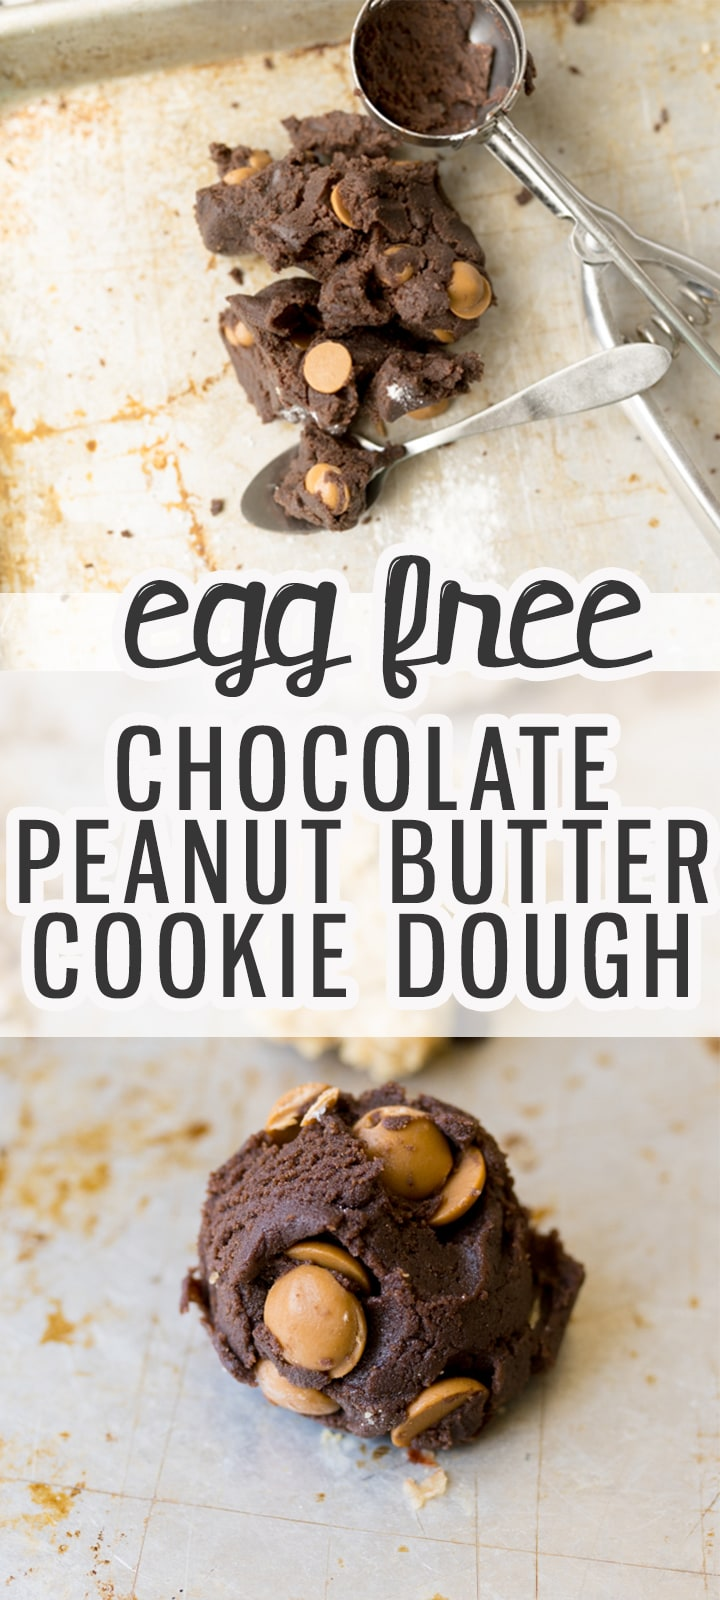 chocolate peanut butter cookie dough pin image